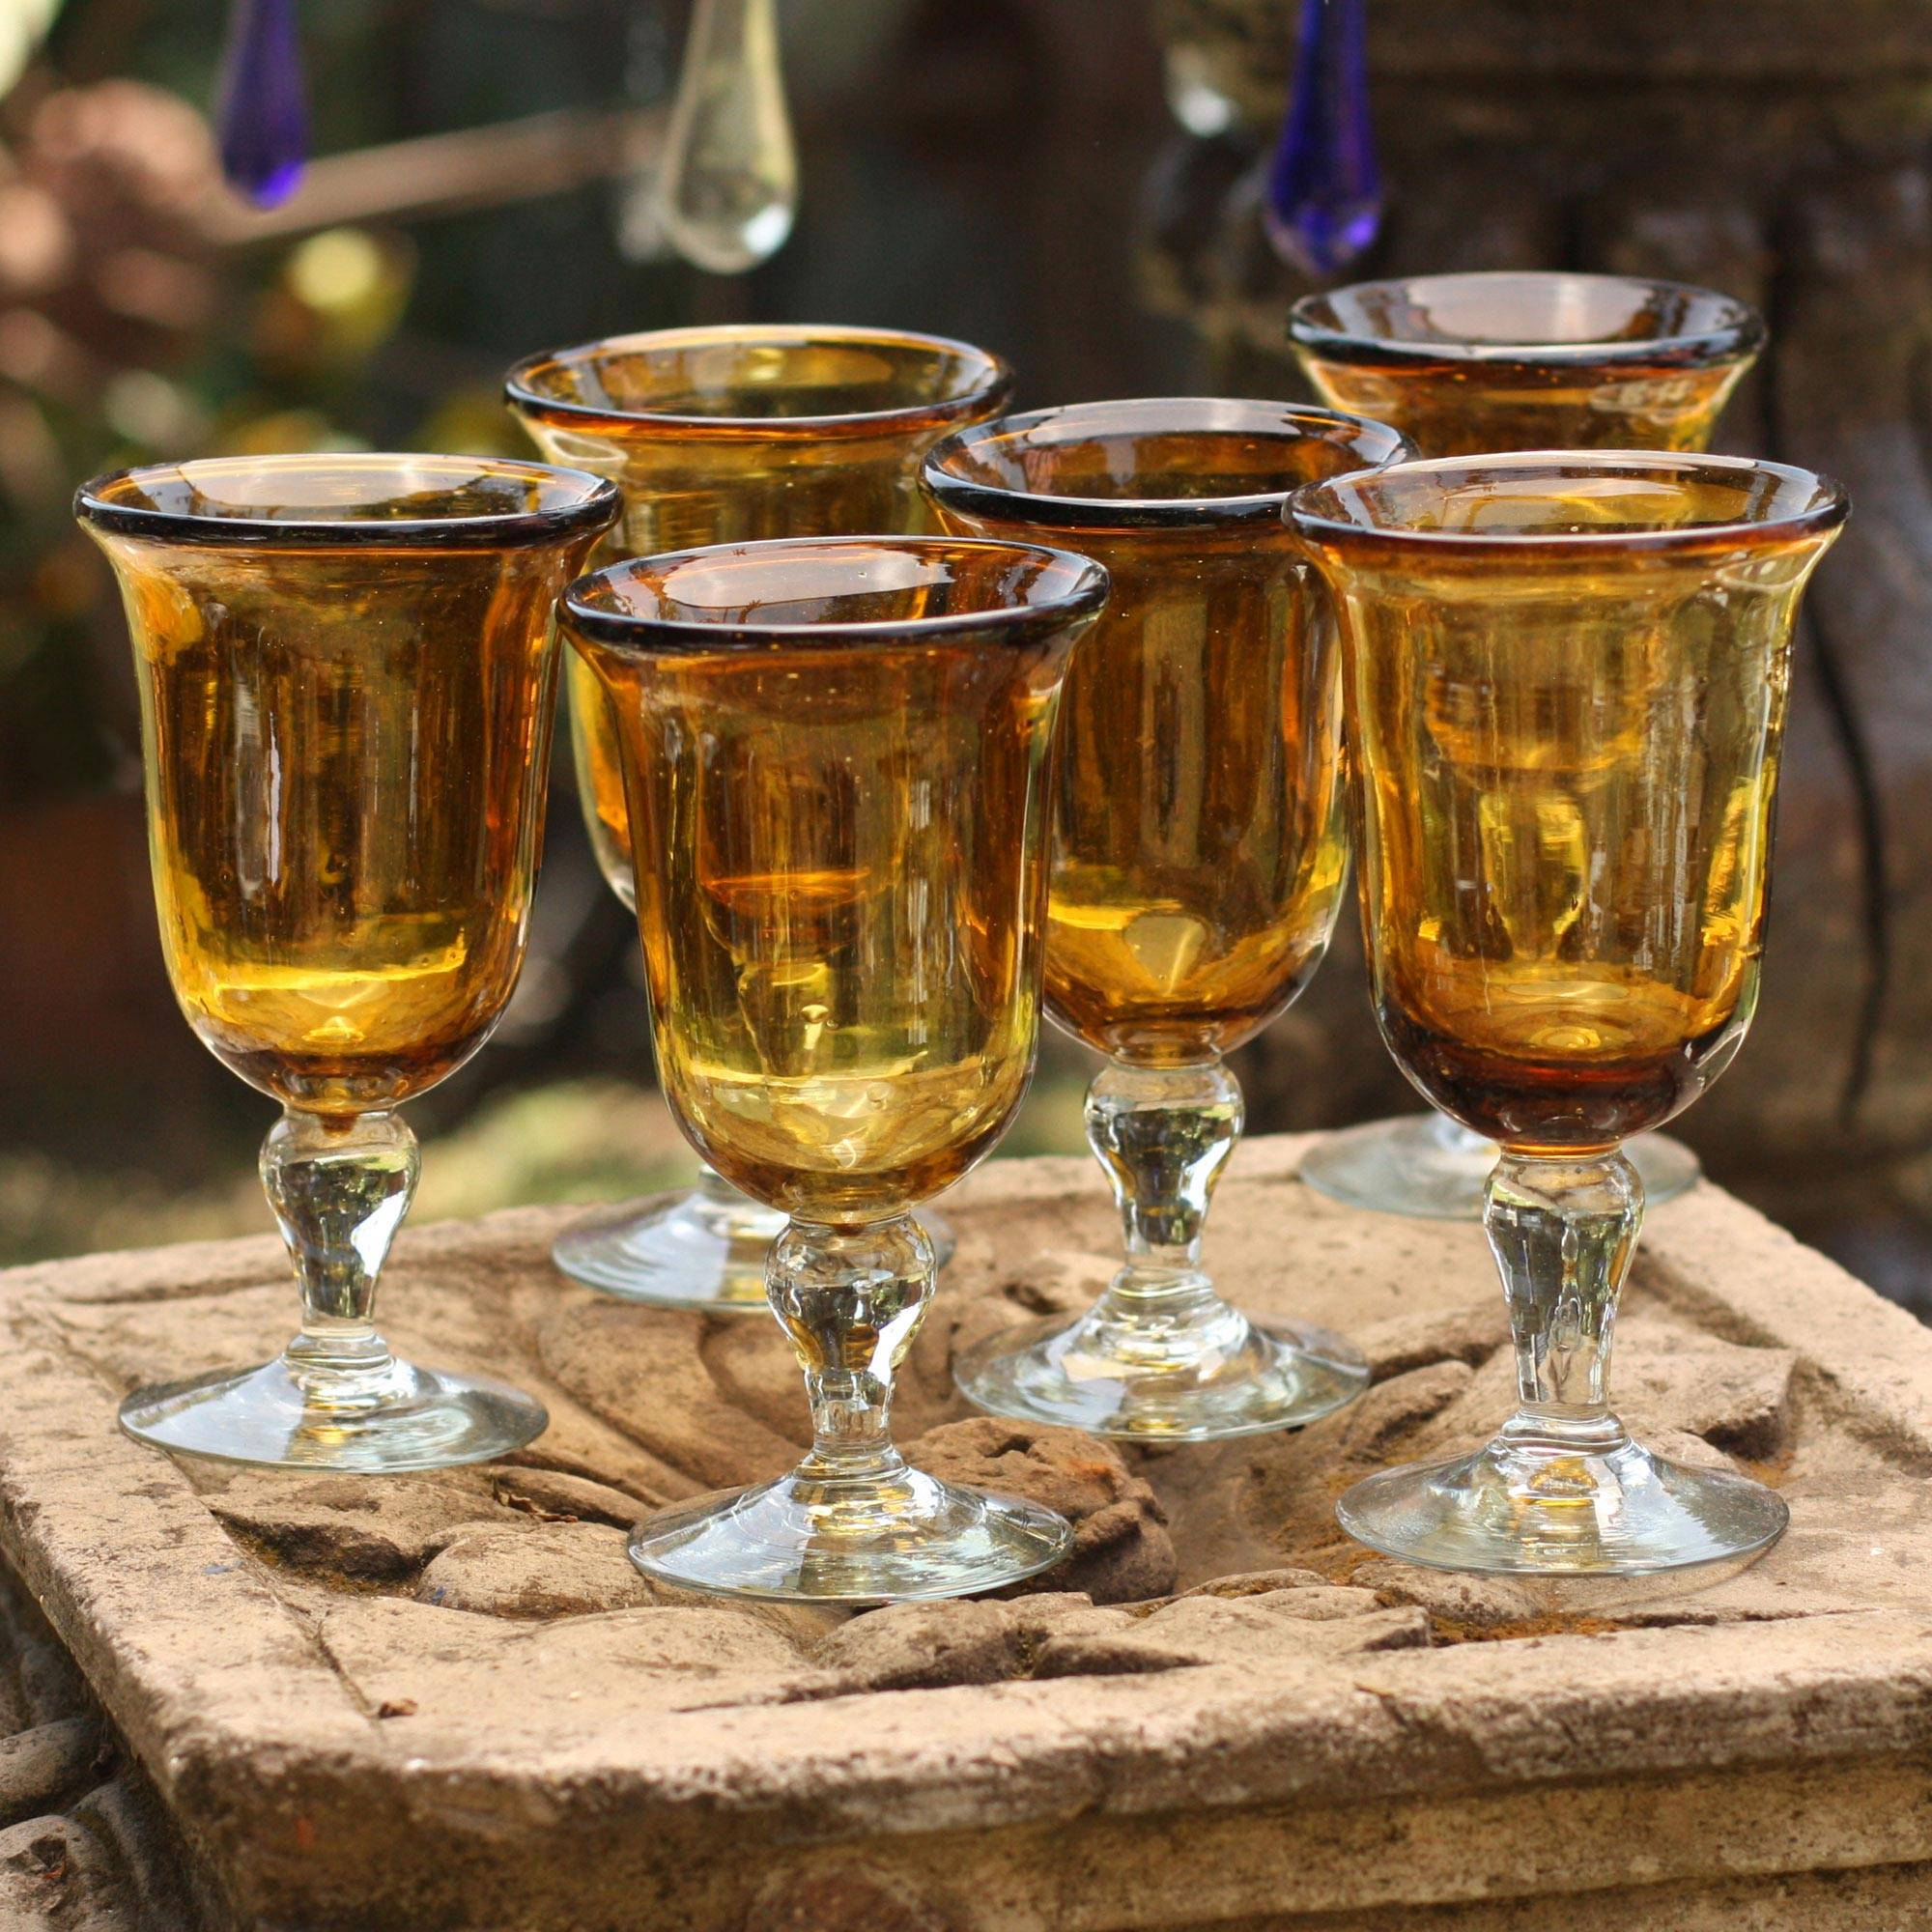 Golden Amber Hand Blown Goblets Glasses Set of 6 Mexico essential glassware for your home bar